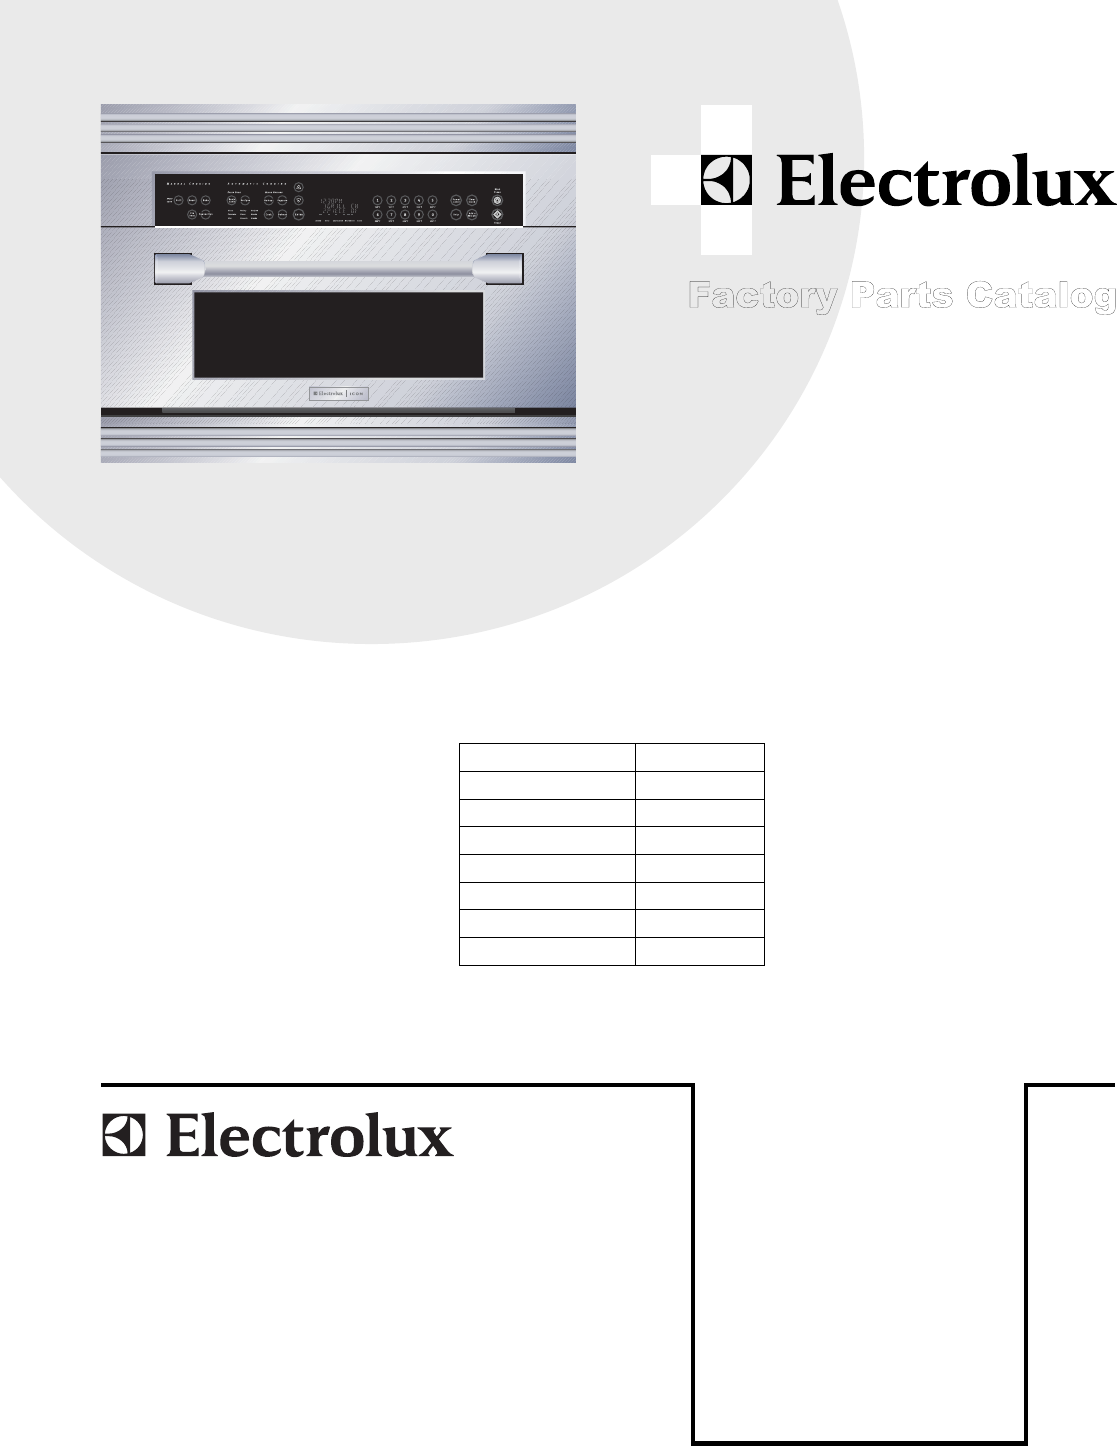 E30SO75FPS cover.eps E30SO75ESS OVEN AND CABINET PARTS.eps E30S075FPS